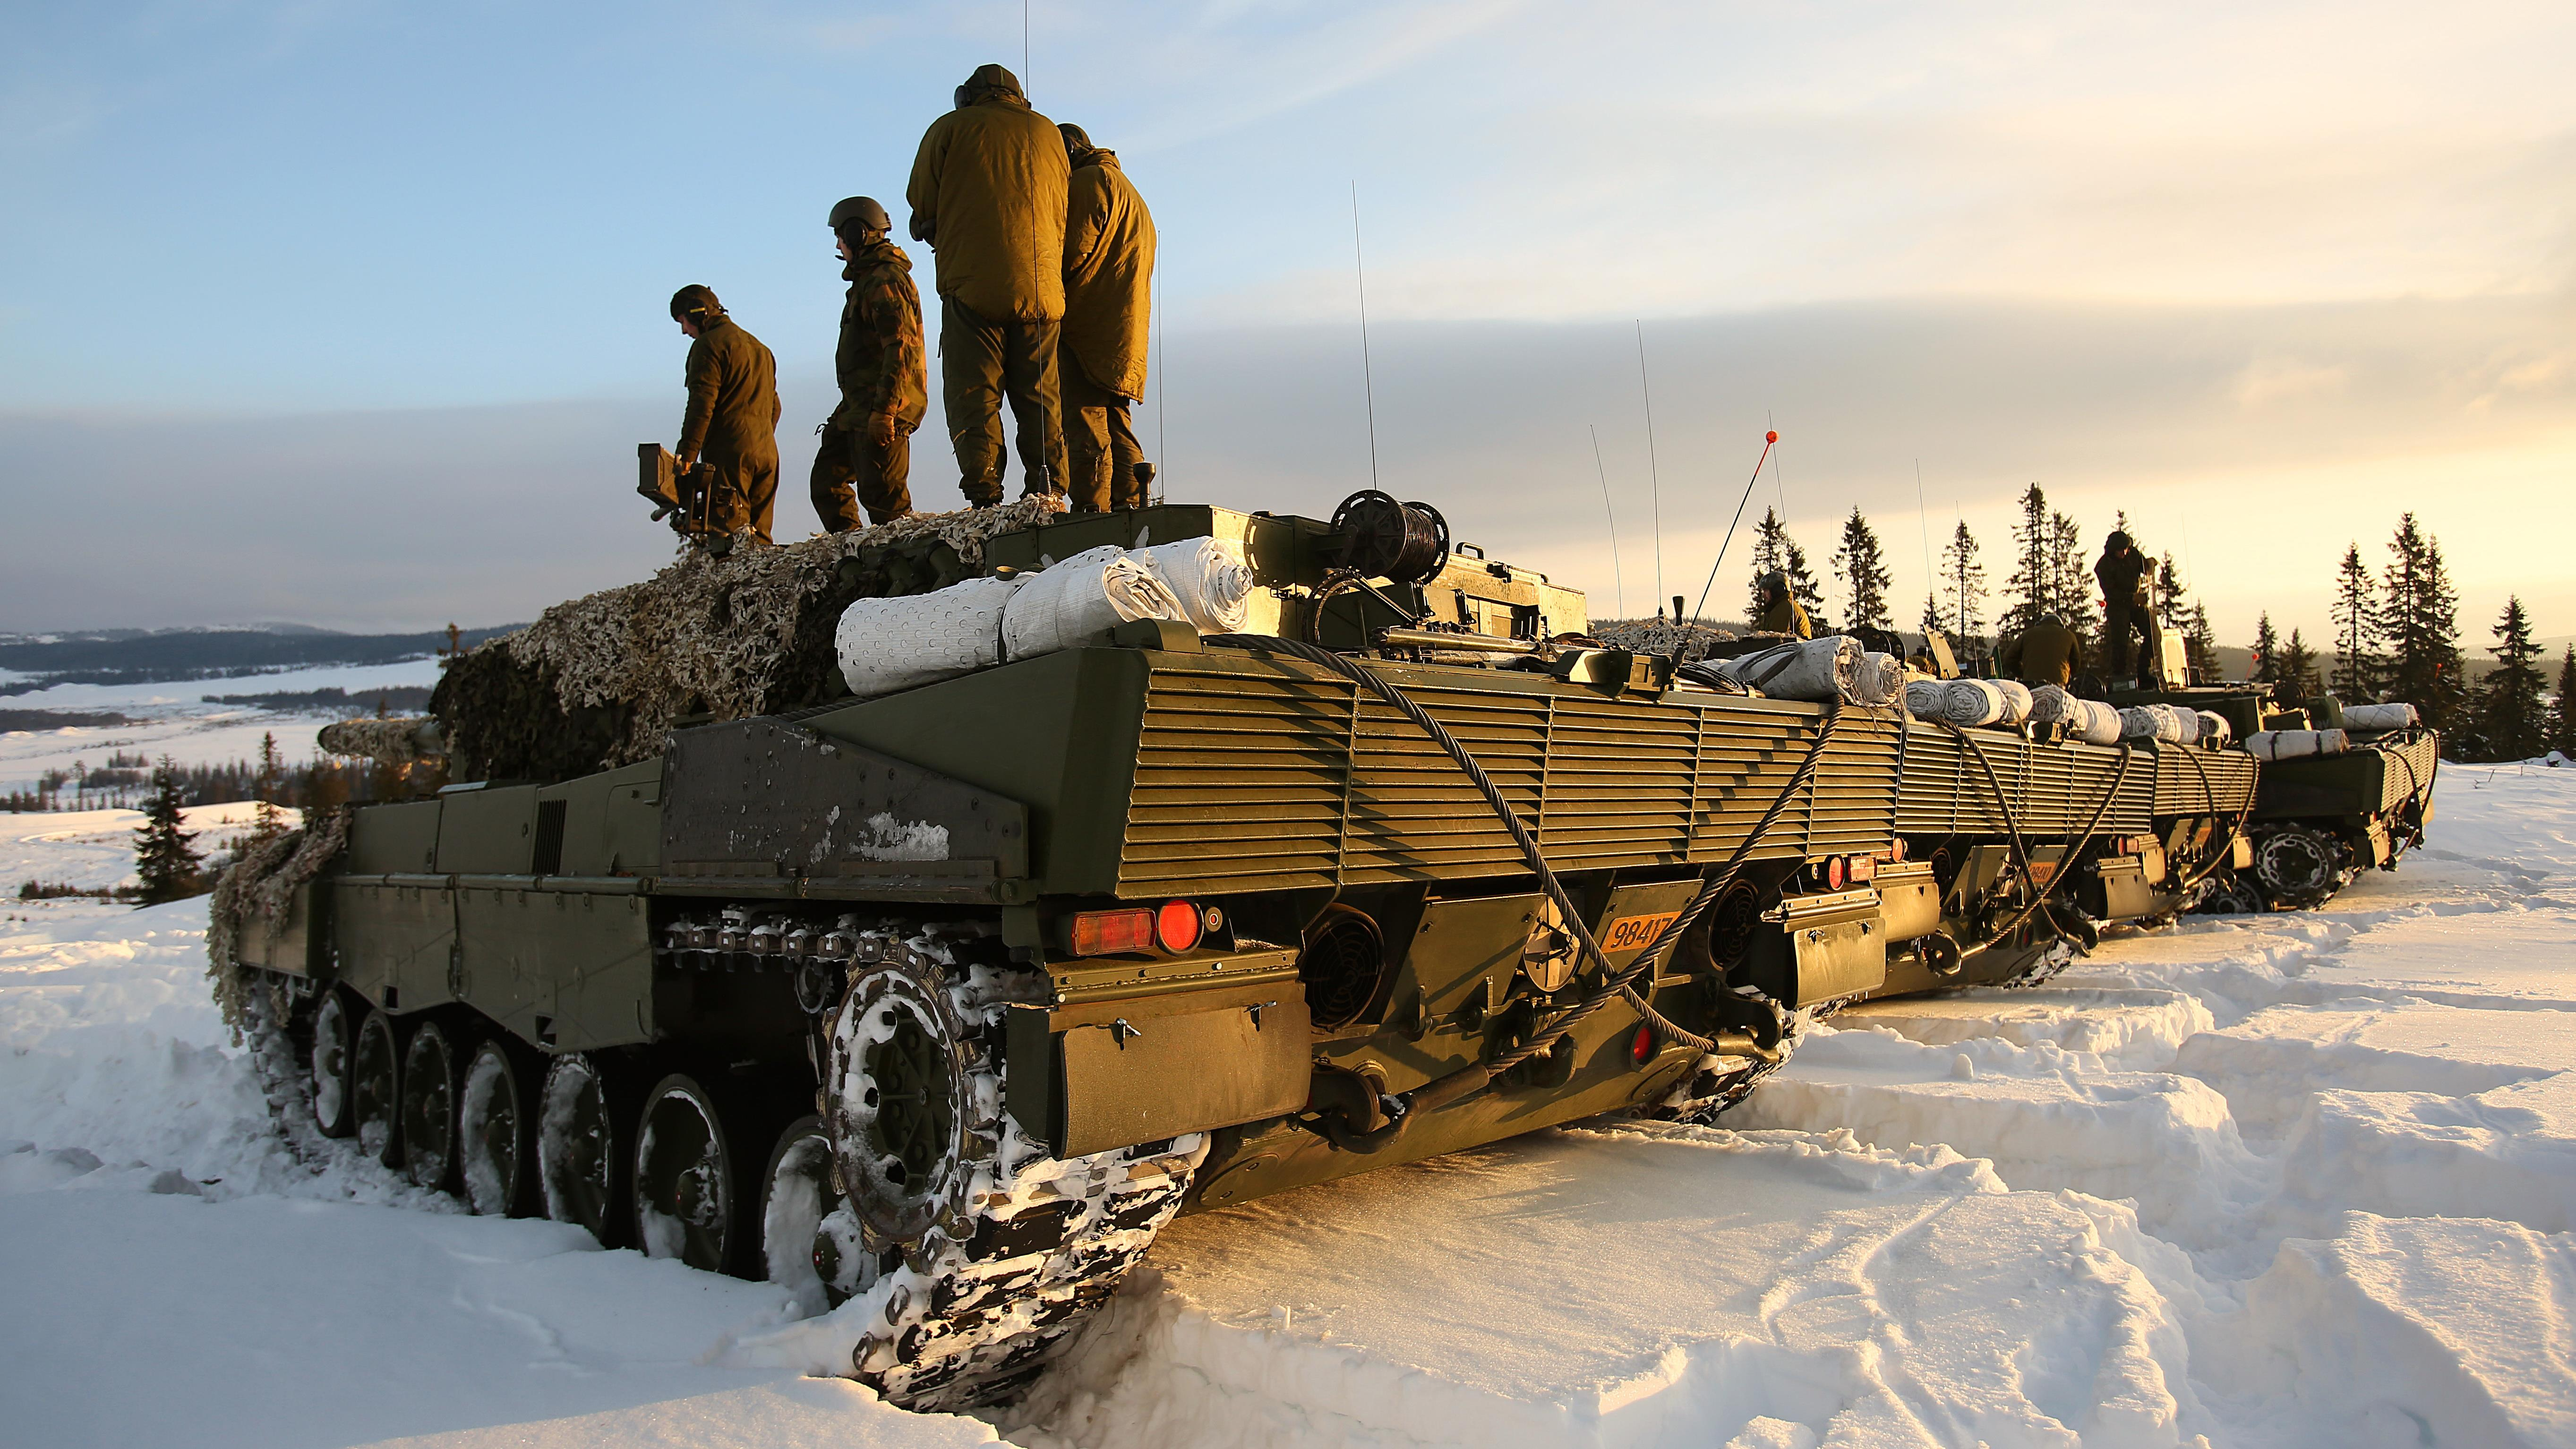 Norwegian Leopard tank crews from the Telemark Battalion prepare for a live-fire exercise in Rena, Norway, Feb. 18, 2016. (Master Sgt. Chad McMeen / U.S. Marine Corps)